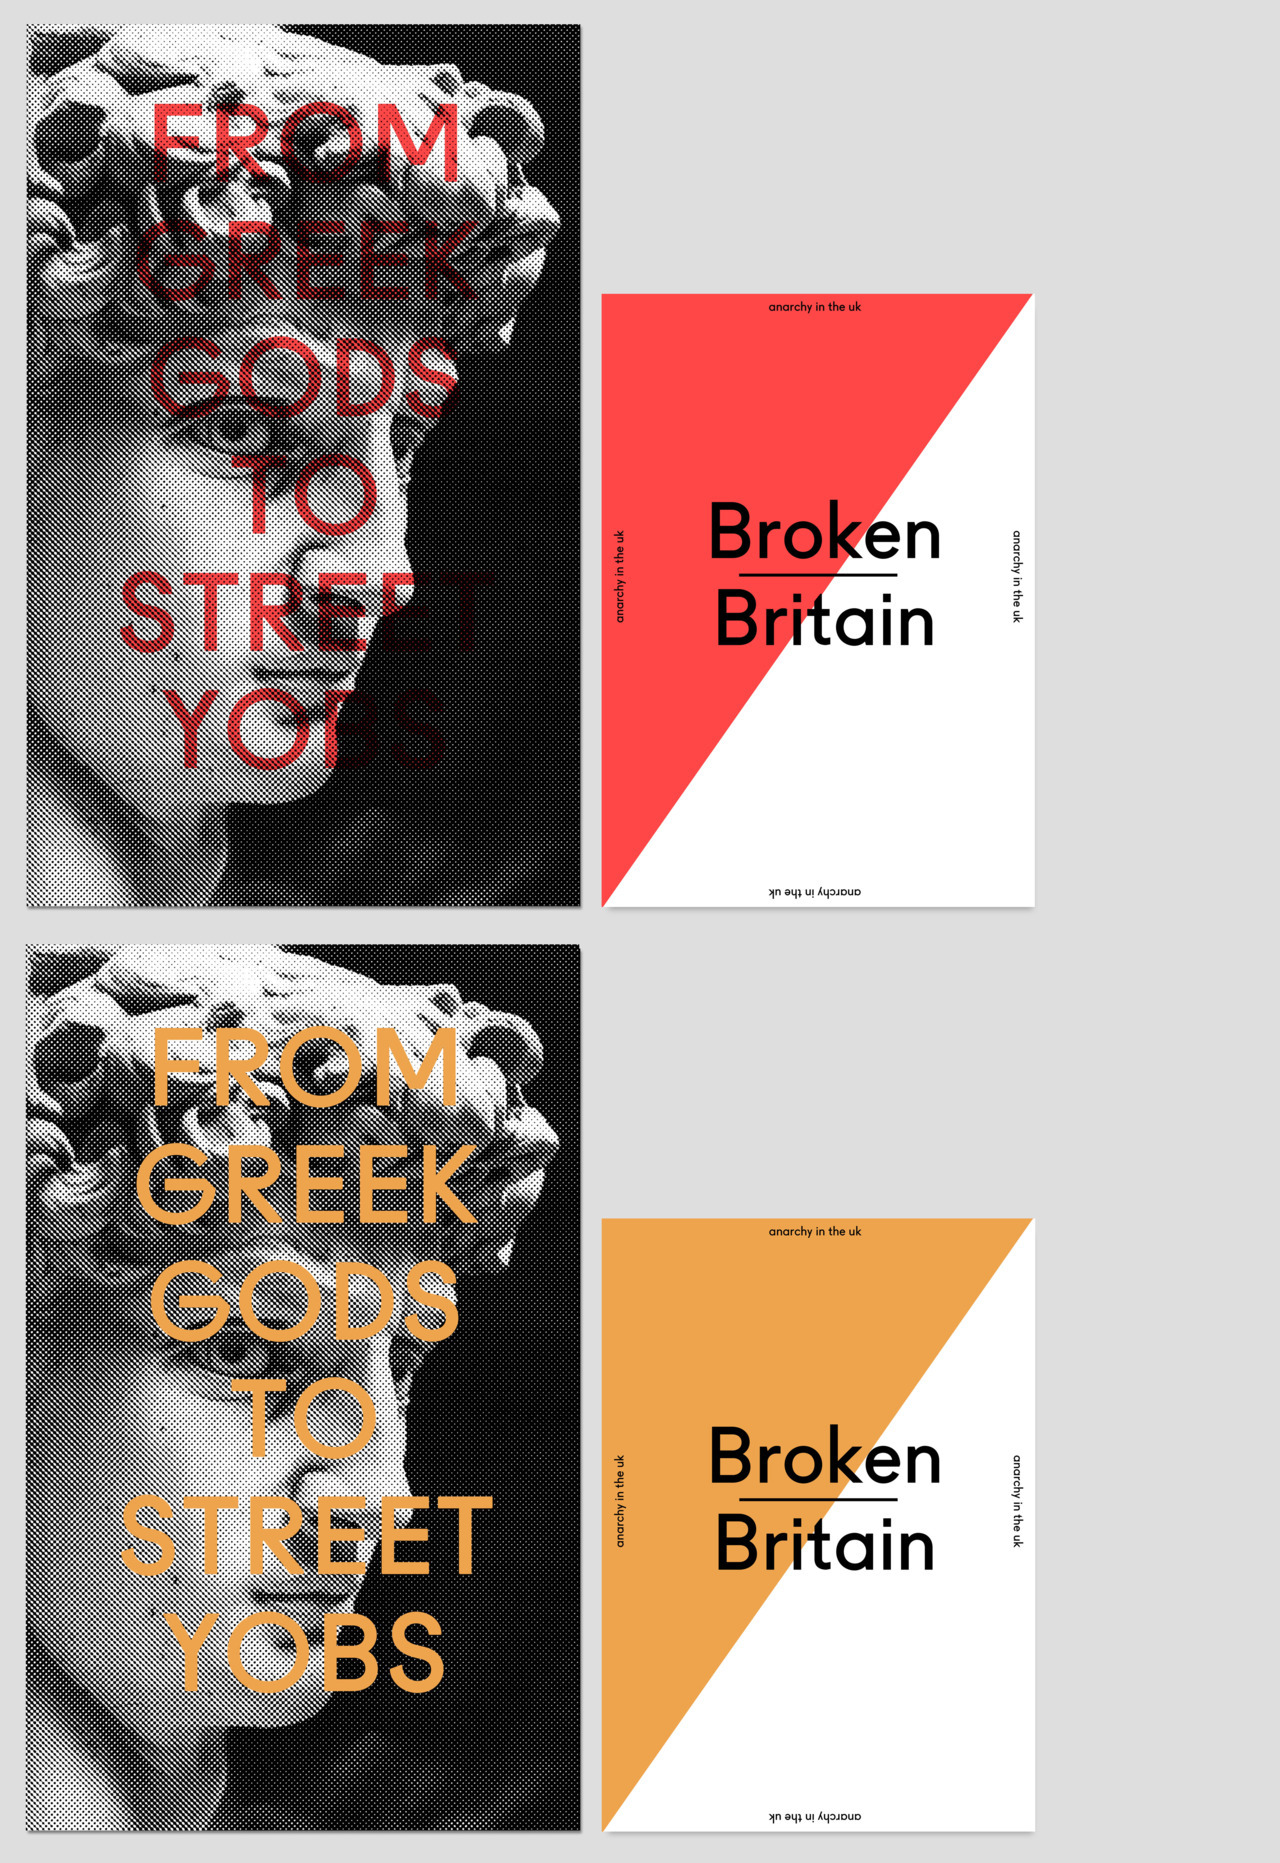 wecreatestudio:  Broken Britain - from greek gods to street yobs © Edition of 25 in each colour way we create studio | brad rose - do not remove credit — reblog for a chance to win a copy. must be following we create studio so i can tell who has reblogged from this page